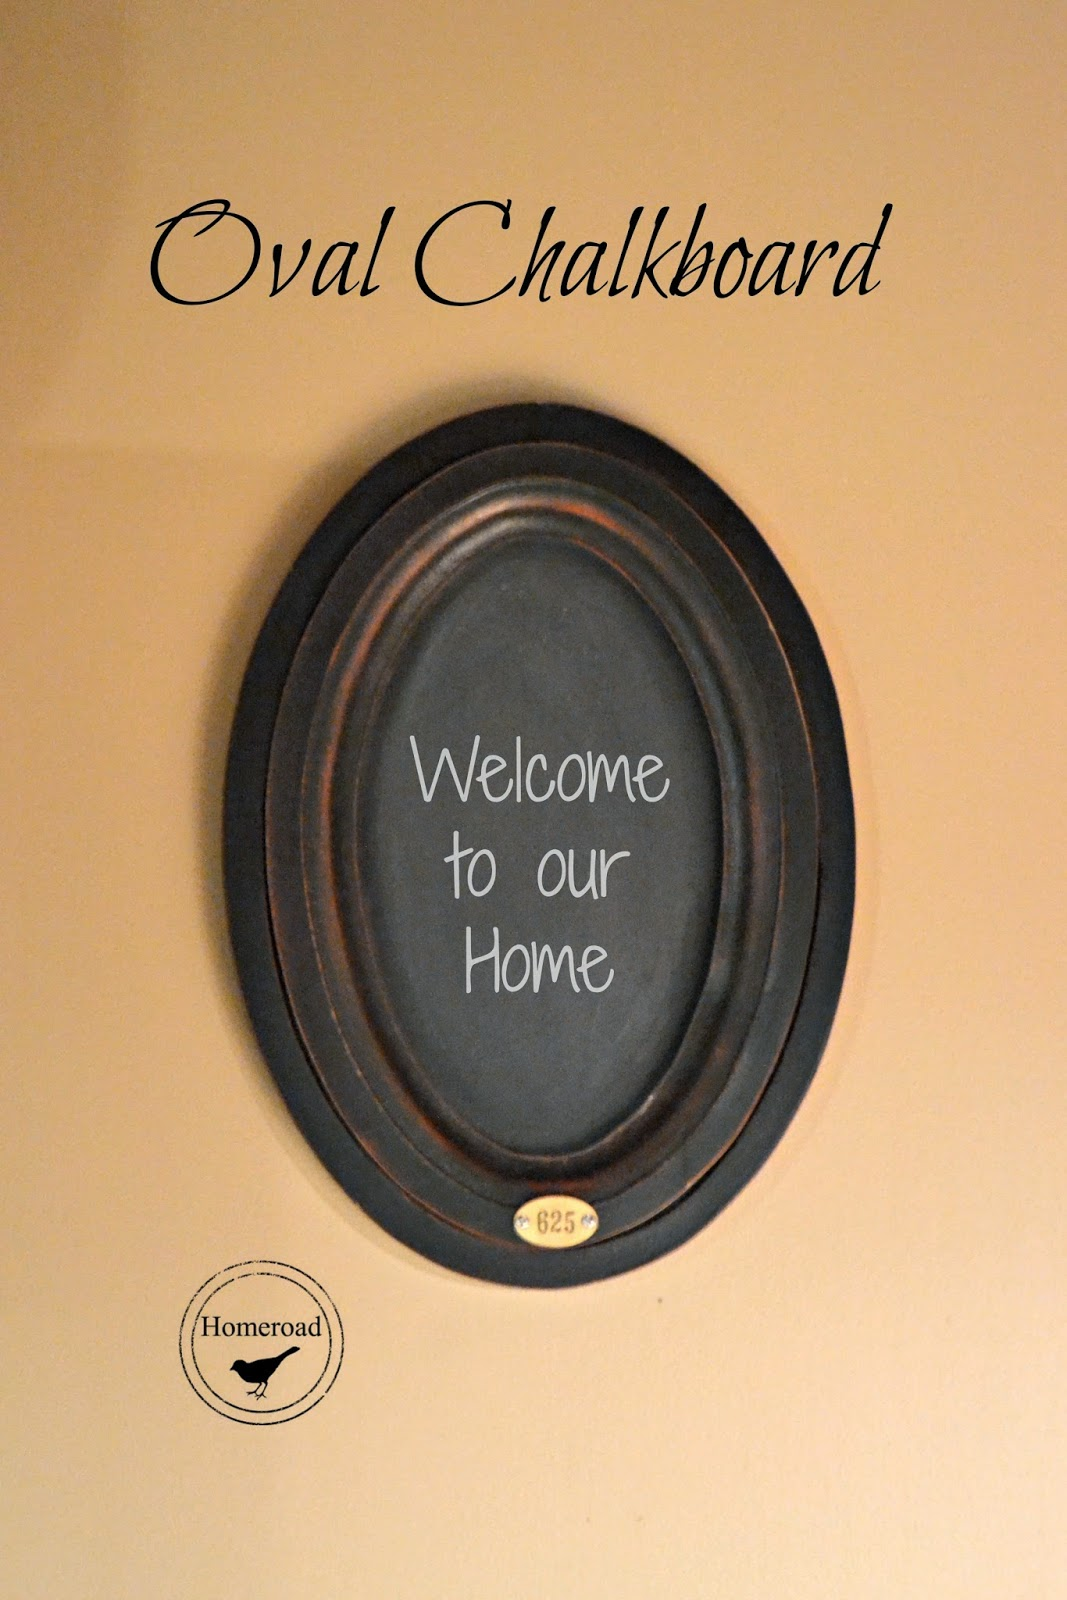 oval chalkboard with metal tag www.homeroad.net